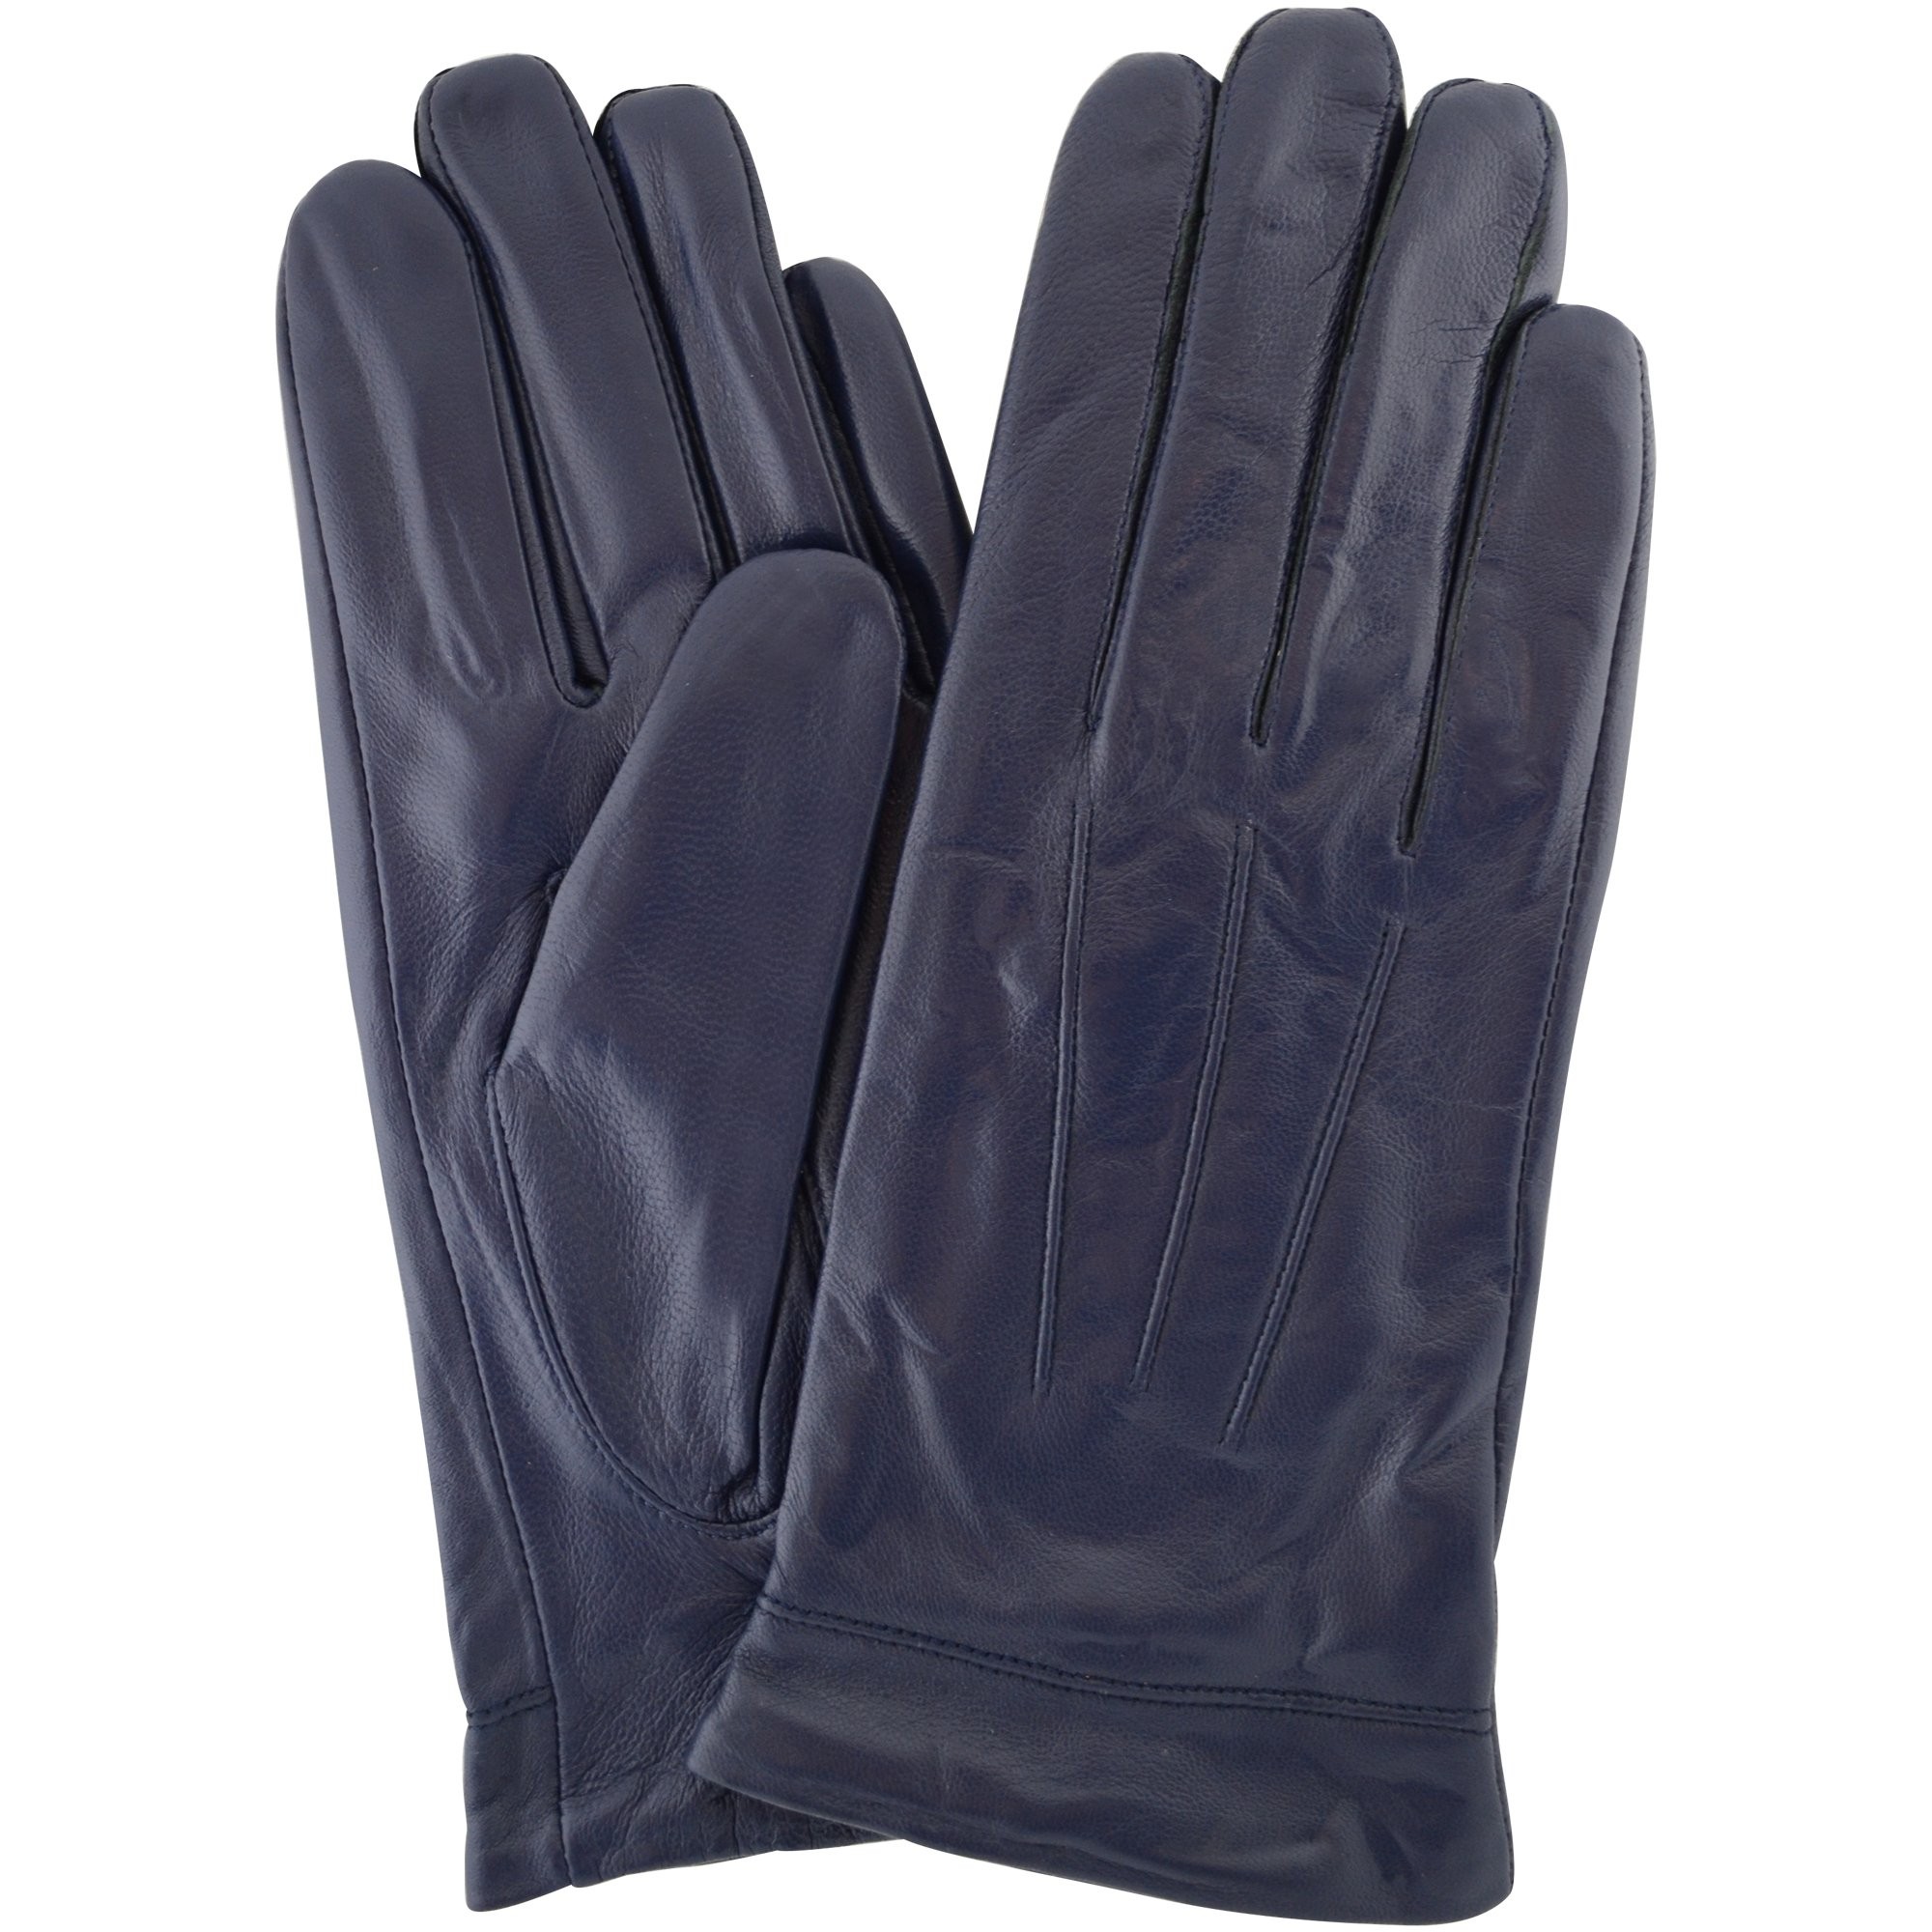 Ladies Butter Soft Leather Glove with 3 Point Woven Stitch design - Blue - Large (7.5'')